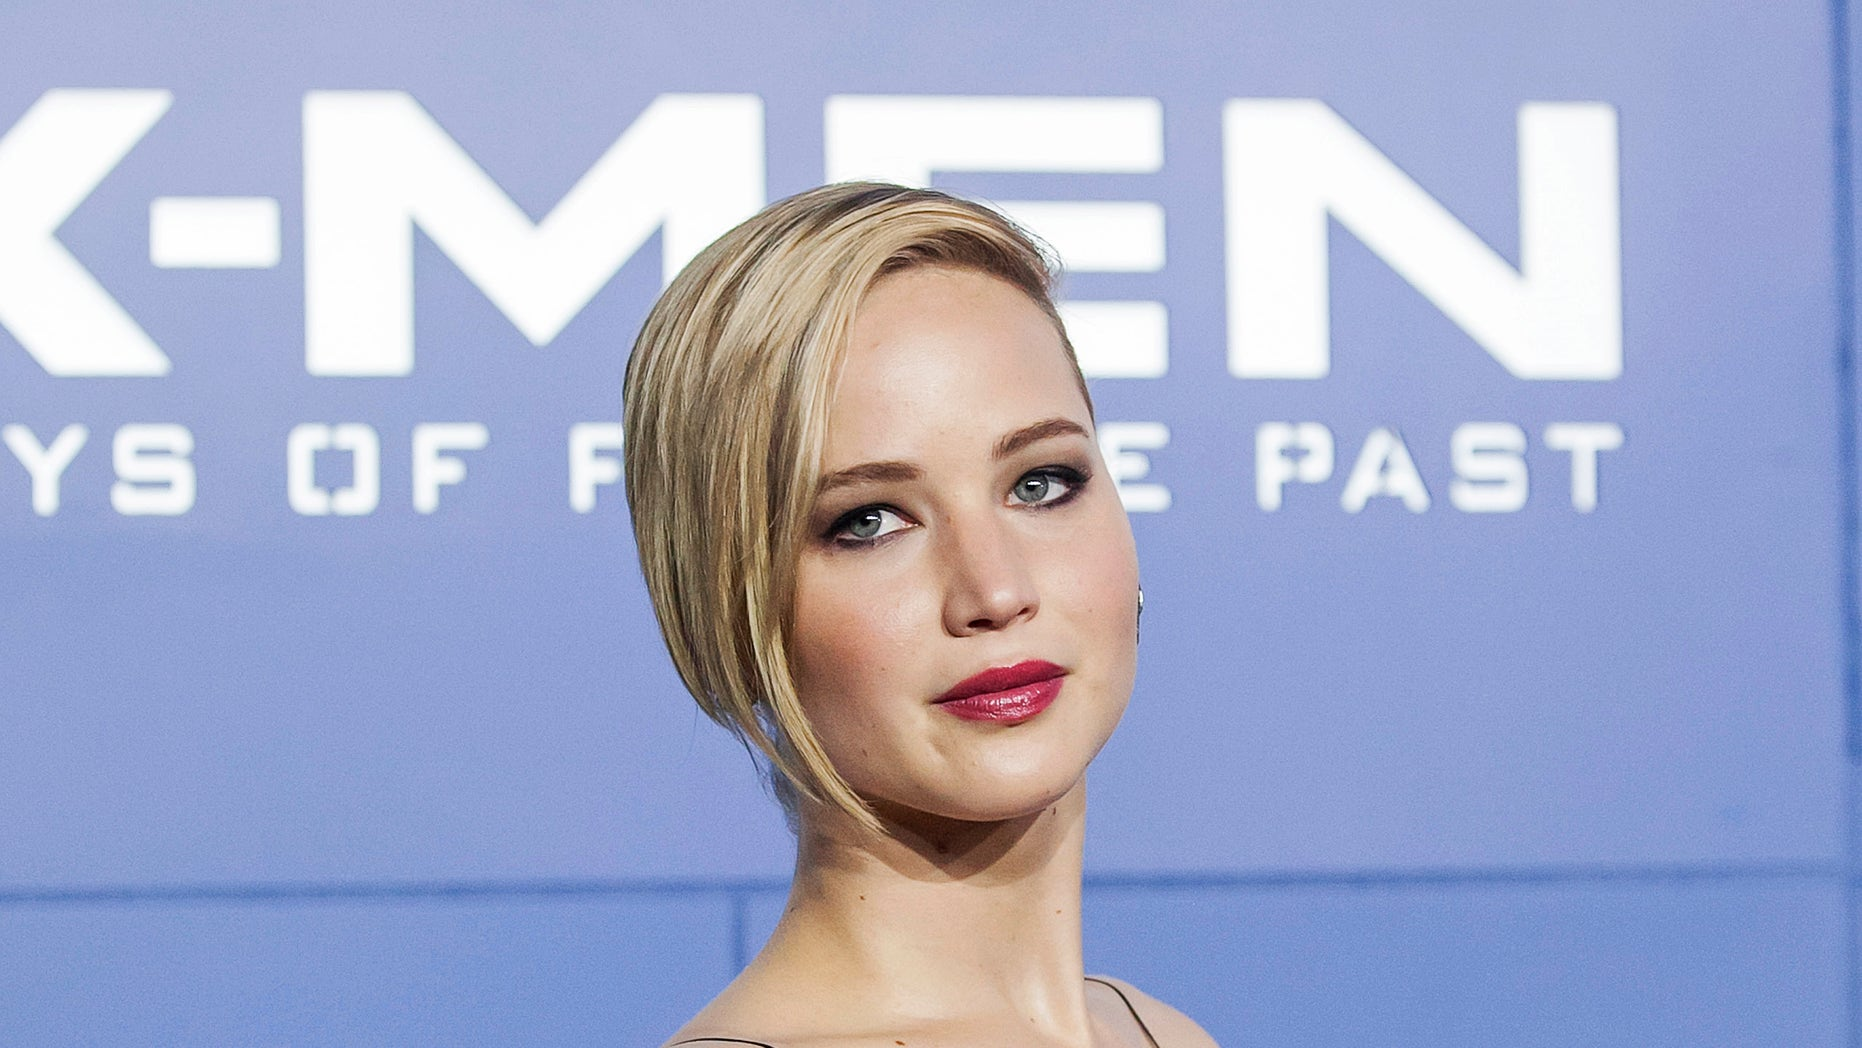 """May 10, 2014. Jennifer Lawrence attends the """"X-Men: Days of Future Past"""" world movie premiere in New York."""